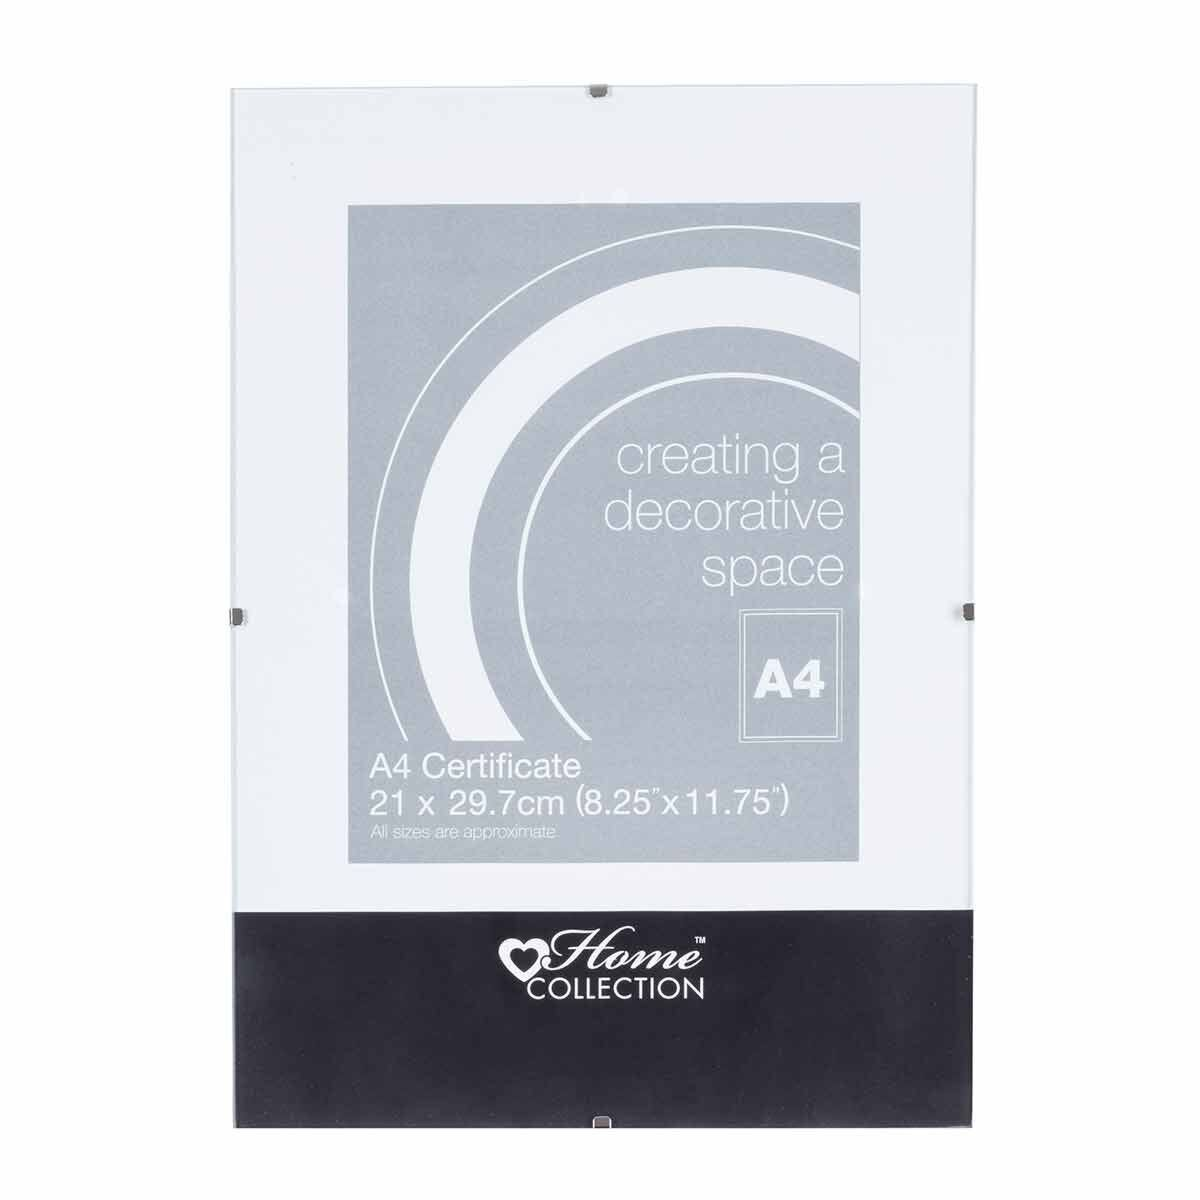 Home Collection Glass Clip Photo Frame A4 Certificate Pack of 12